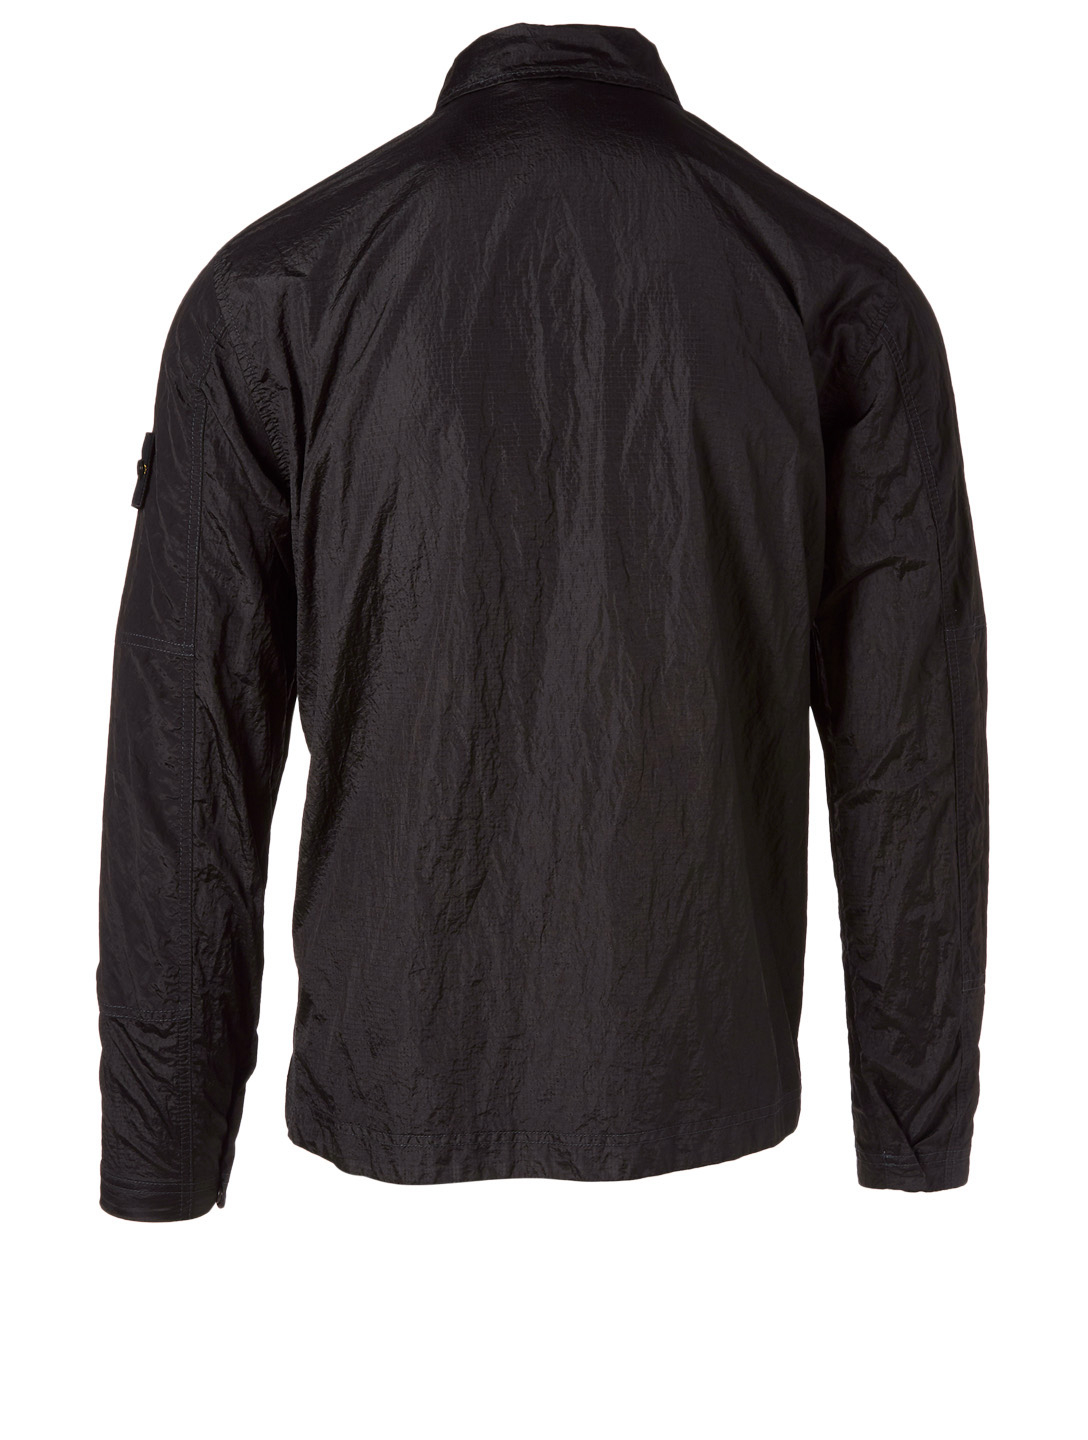 STONE ISLAND Nylon Metal Shirt Jacket Men's Black